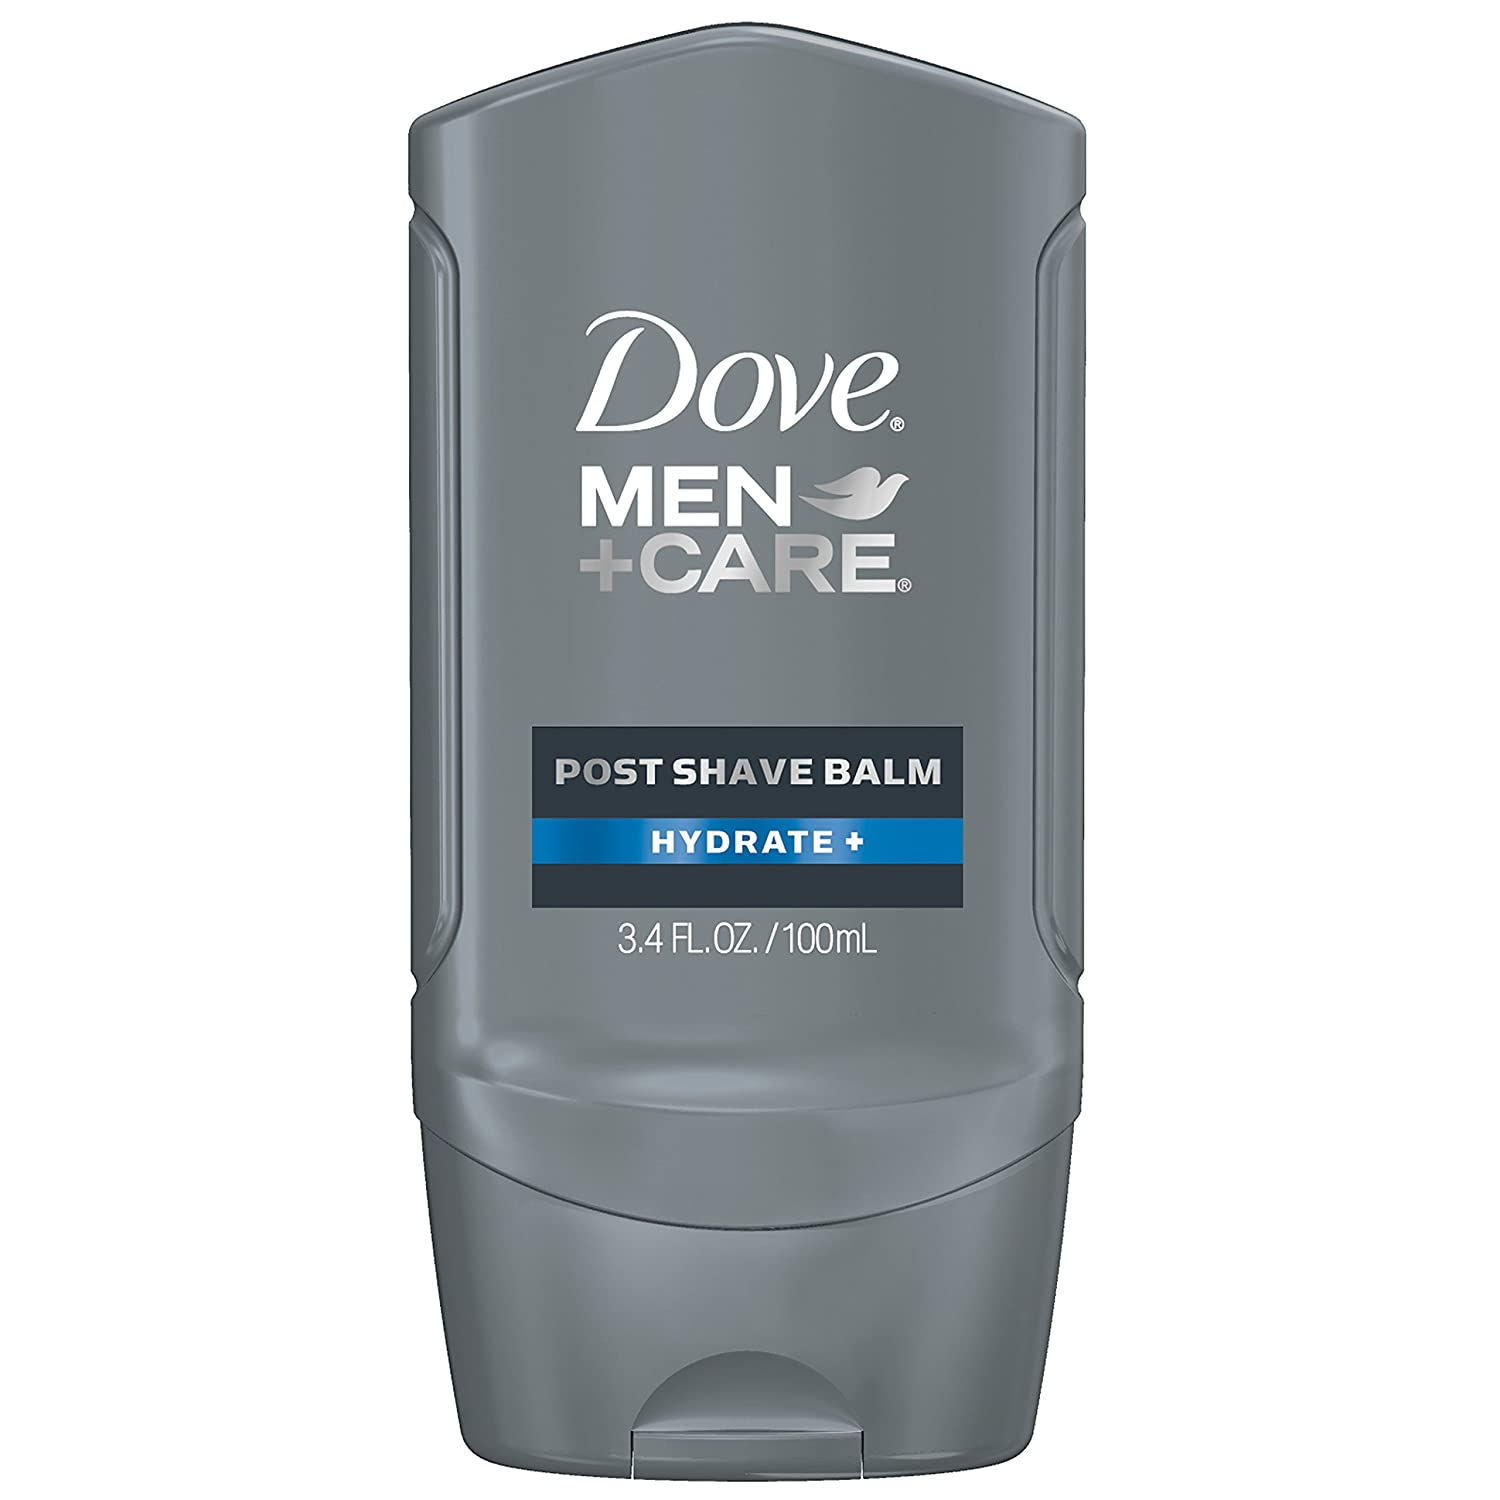 Dove Men+Care Face Care Post Shave Balm, Hydrate 3.4 oz Unilever 10011111260129